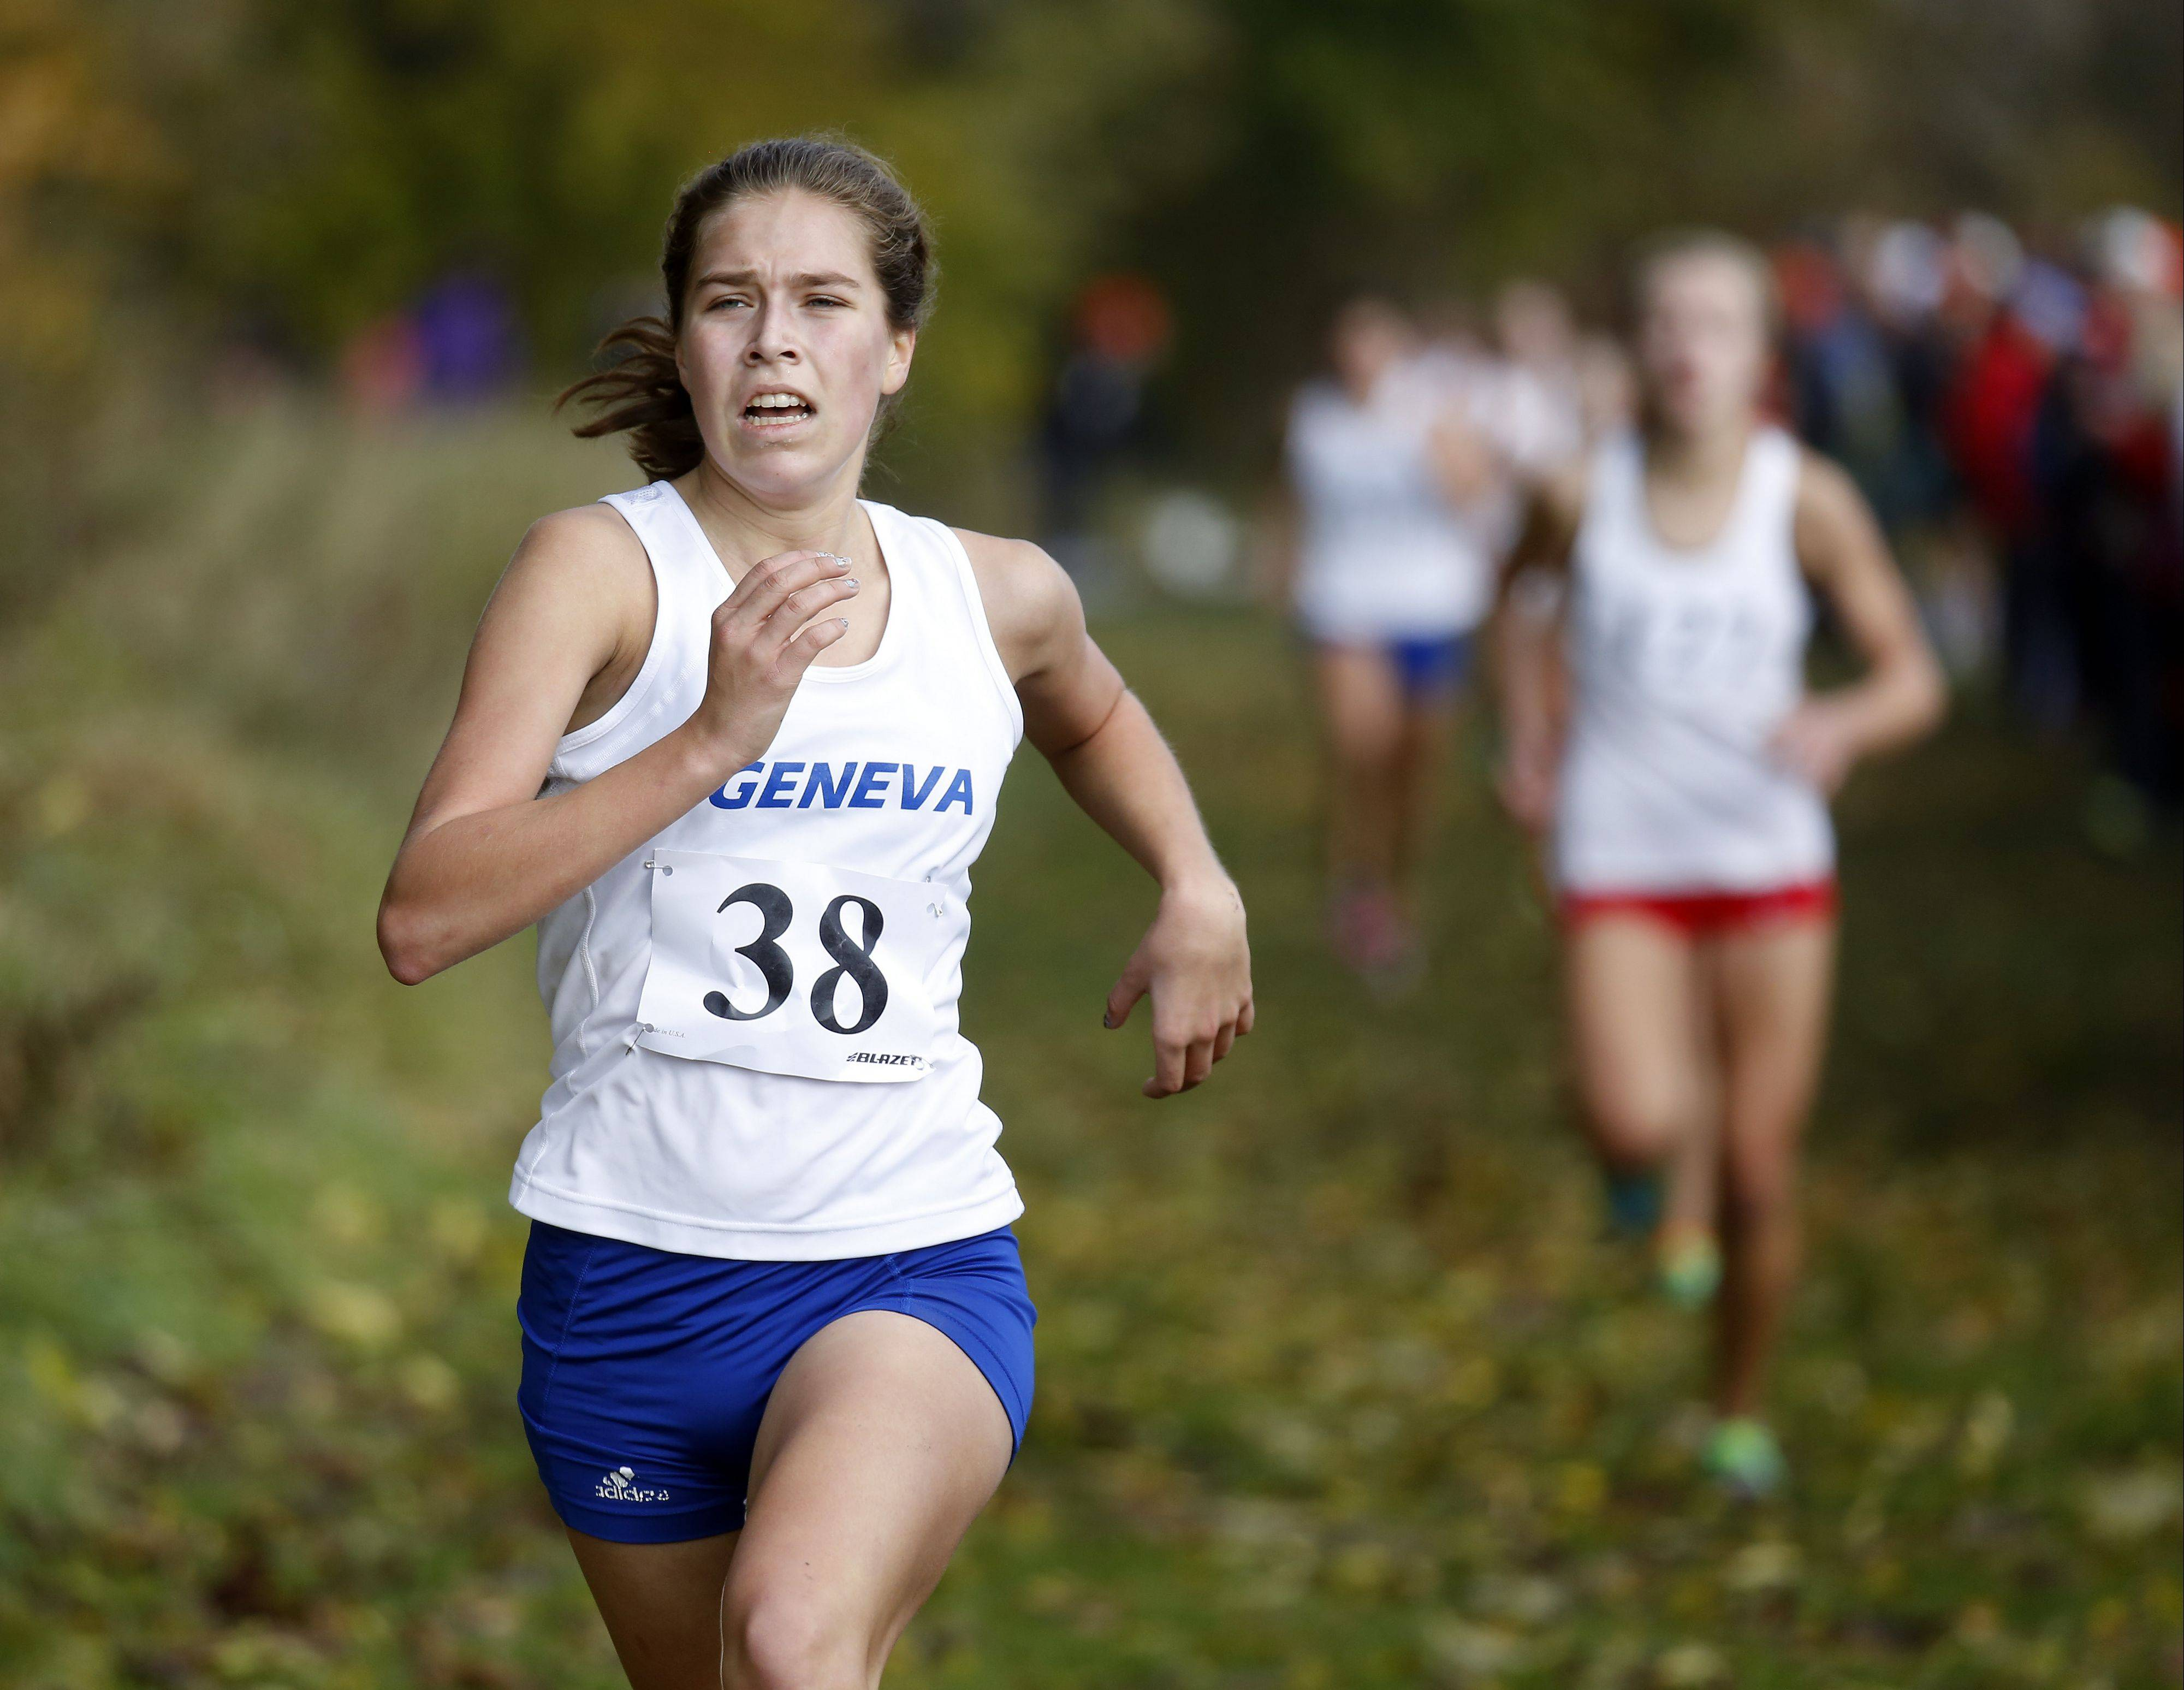 Geneva's McKenzie Altmayer on the way to 16th during the Waubonsie Valley girls cross country Sectional in Aurora.